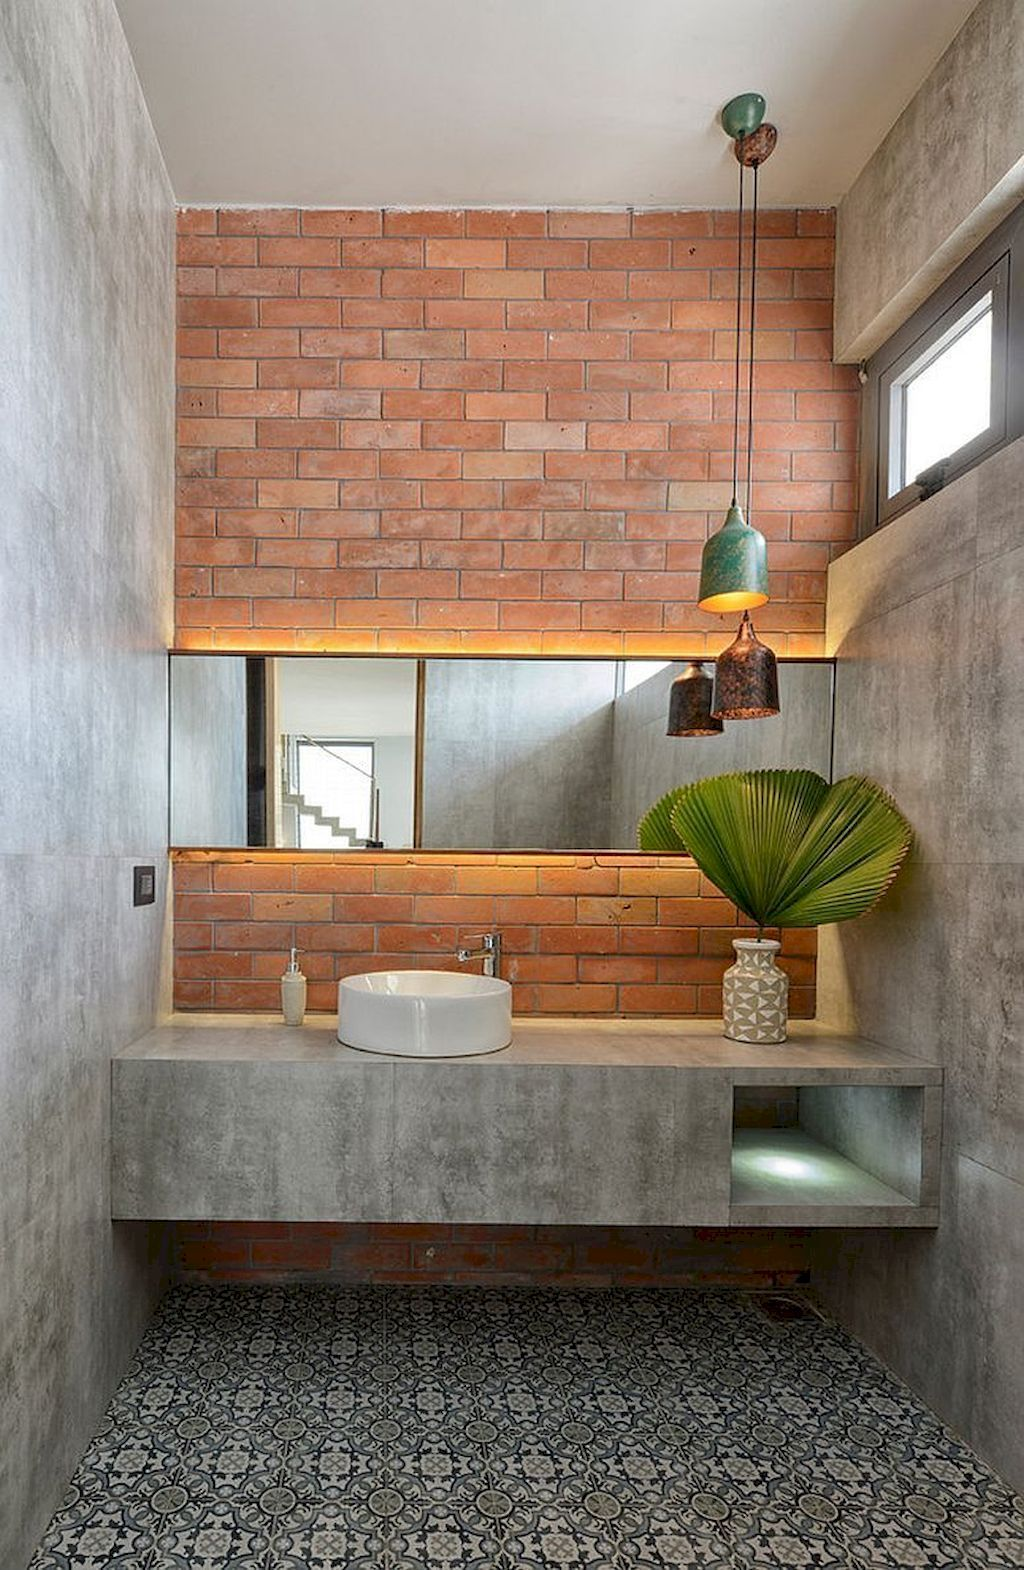 Shocking 121 Simple Cool Creative Wall Decorating Ideas That Are Easy To Apply In Y Industrial Bathroom Design Bathroom Design Trends Creative Bathroom Design